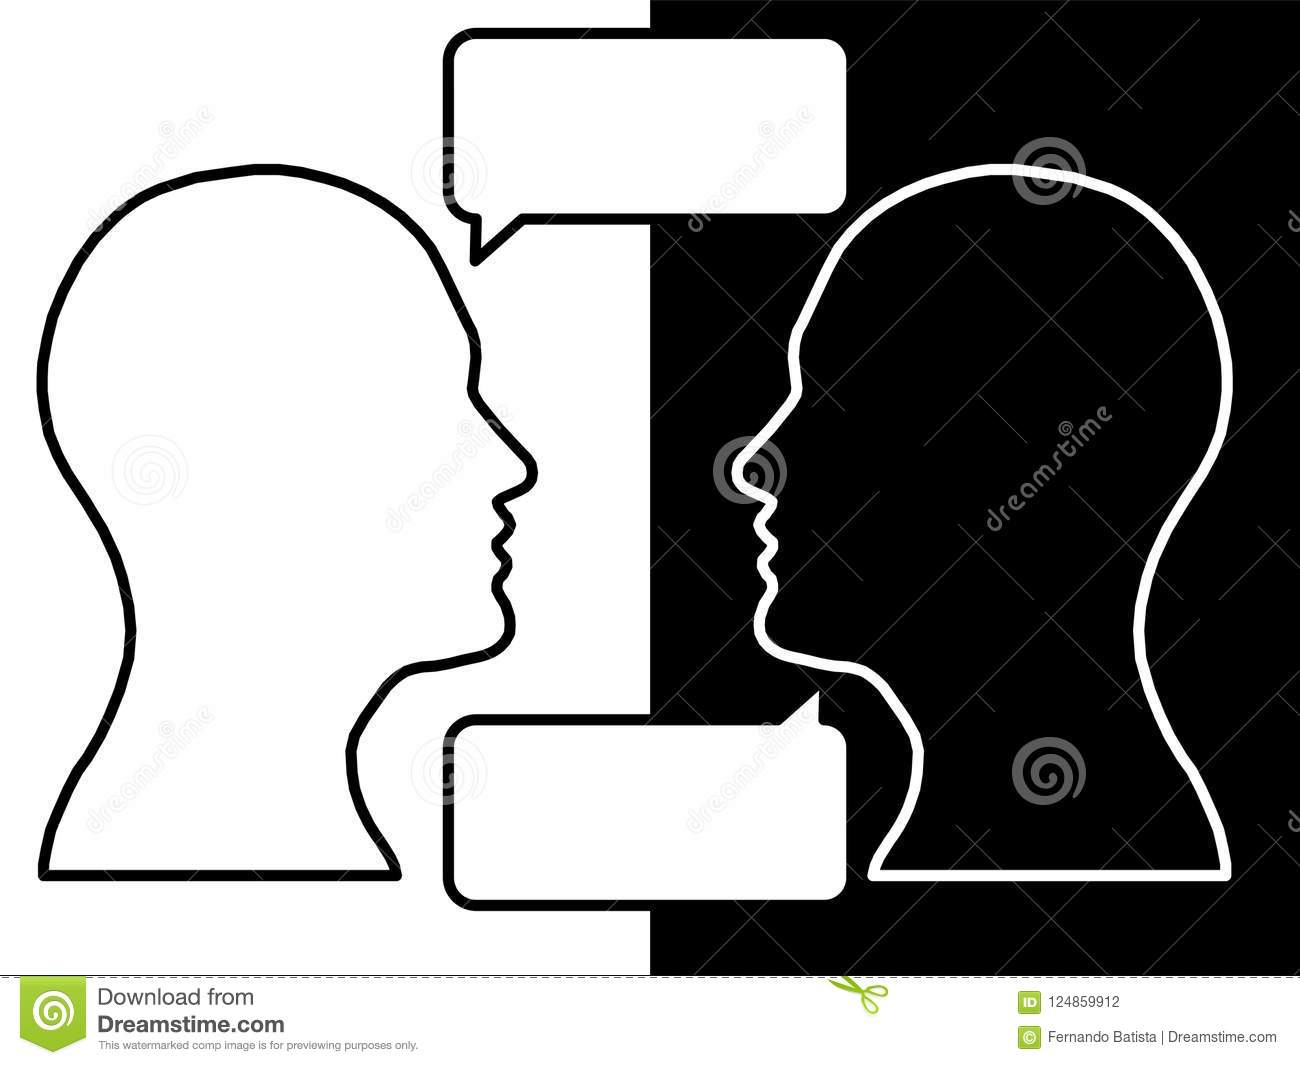 Heads of two people, brainstorming concept for question,